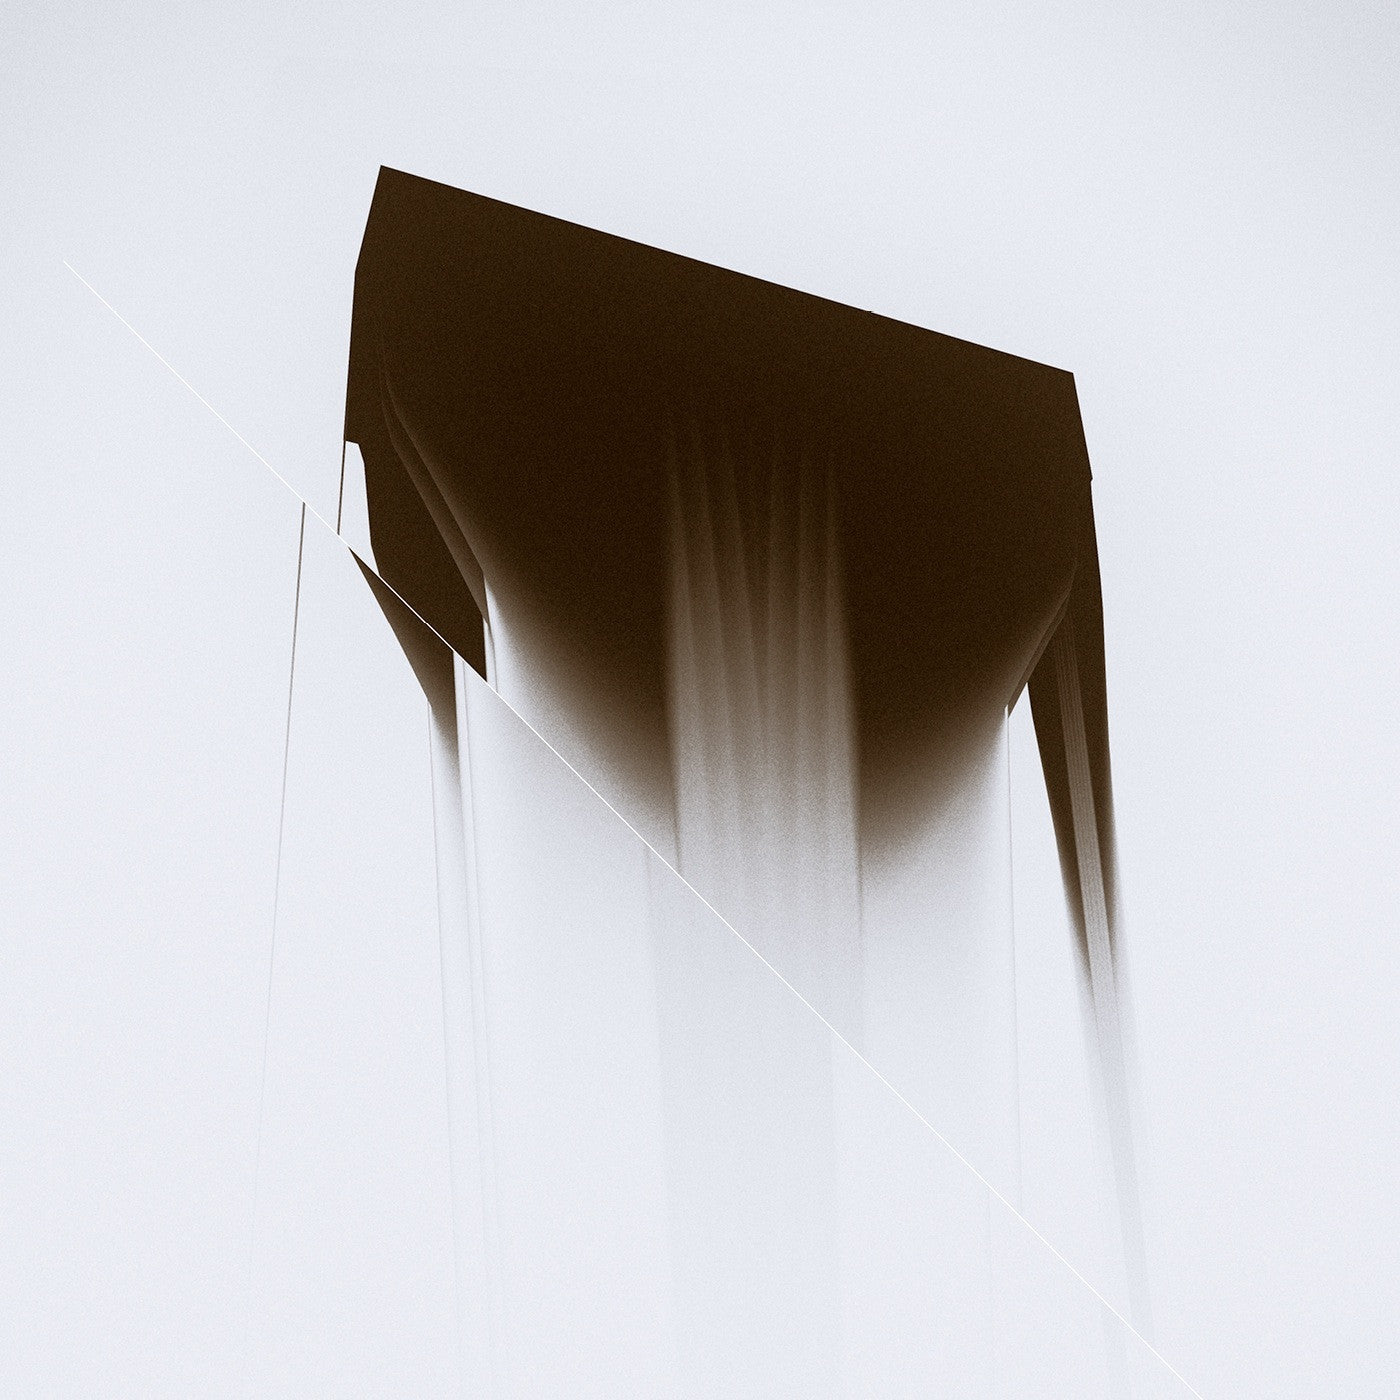 Ital Tek - Hollowed - Unearthed Sounds